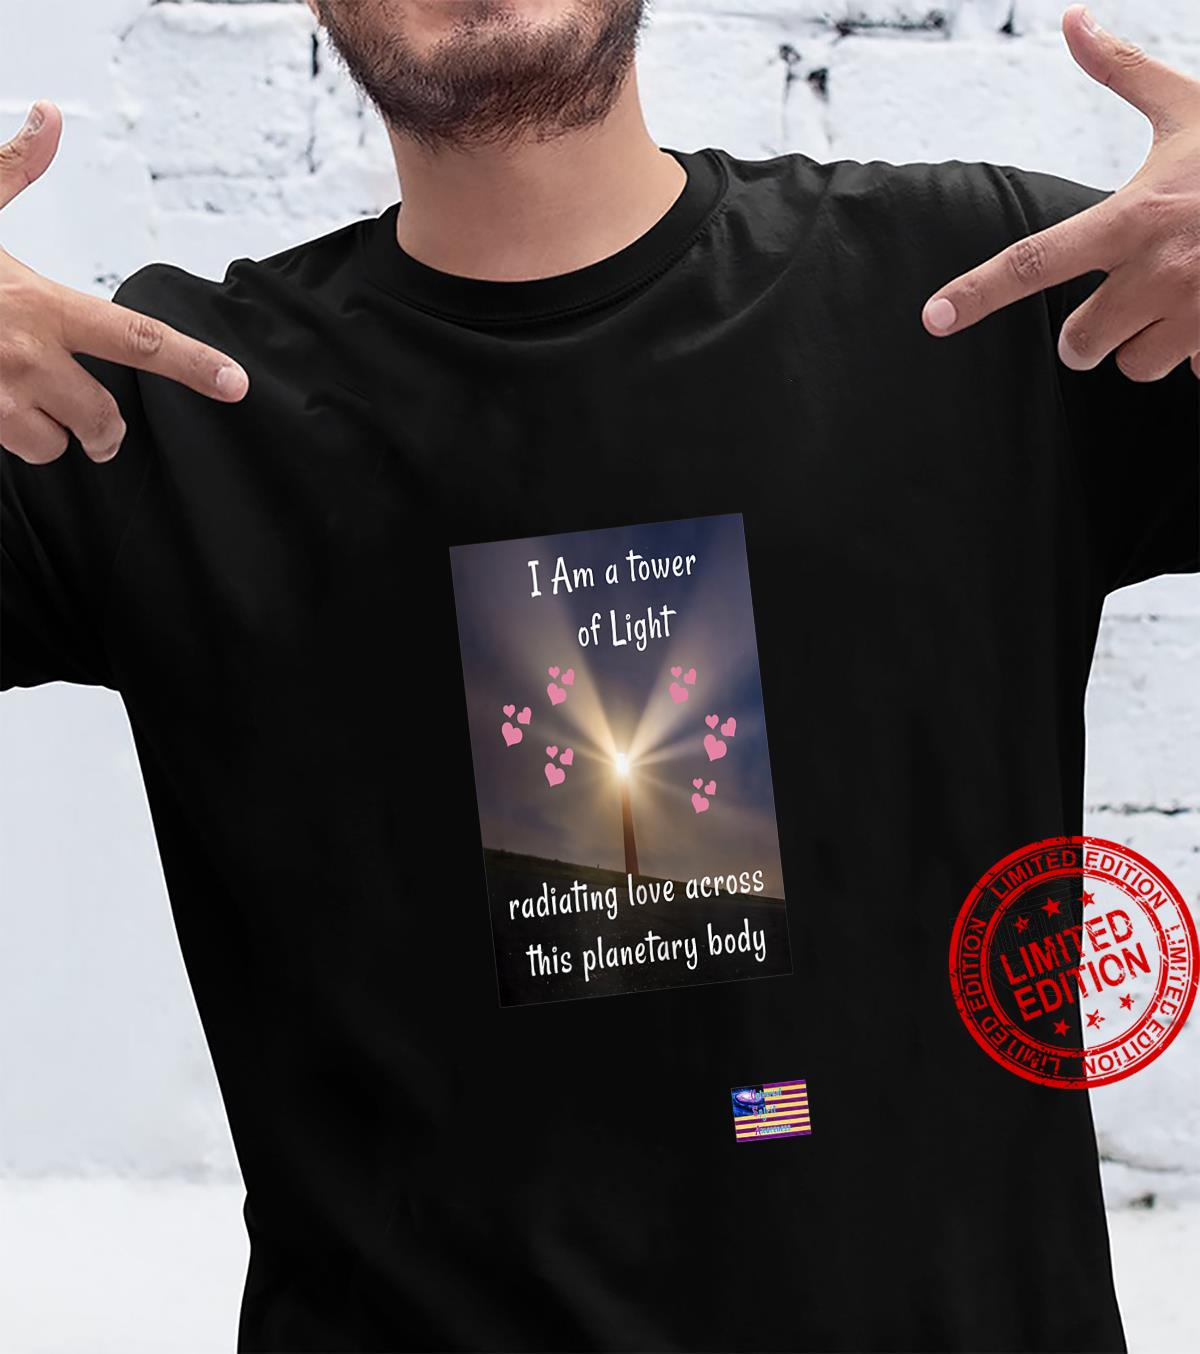 I Am a tower of light radiating love across this planetary.. Shirt